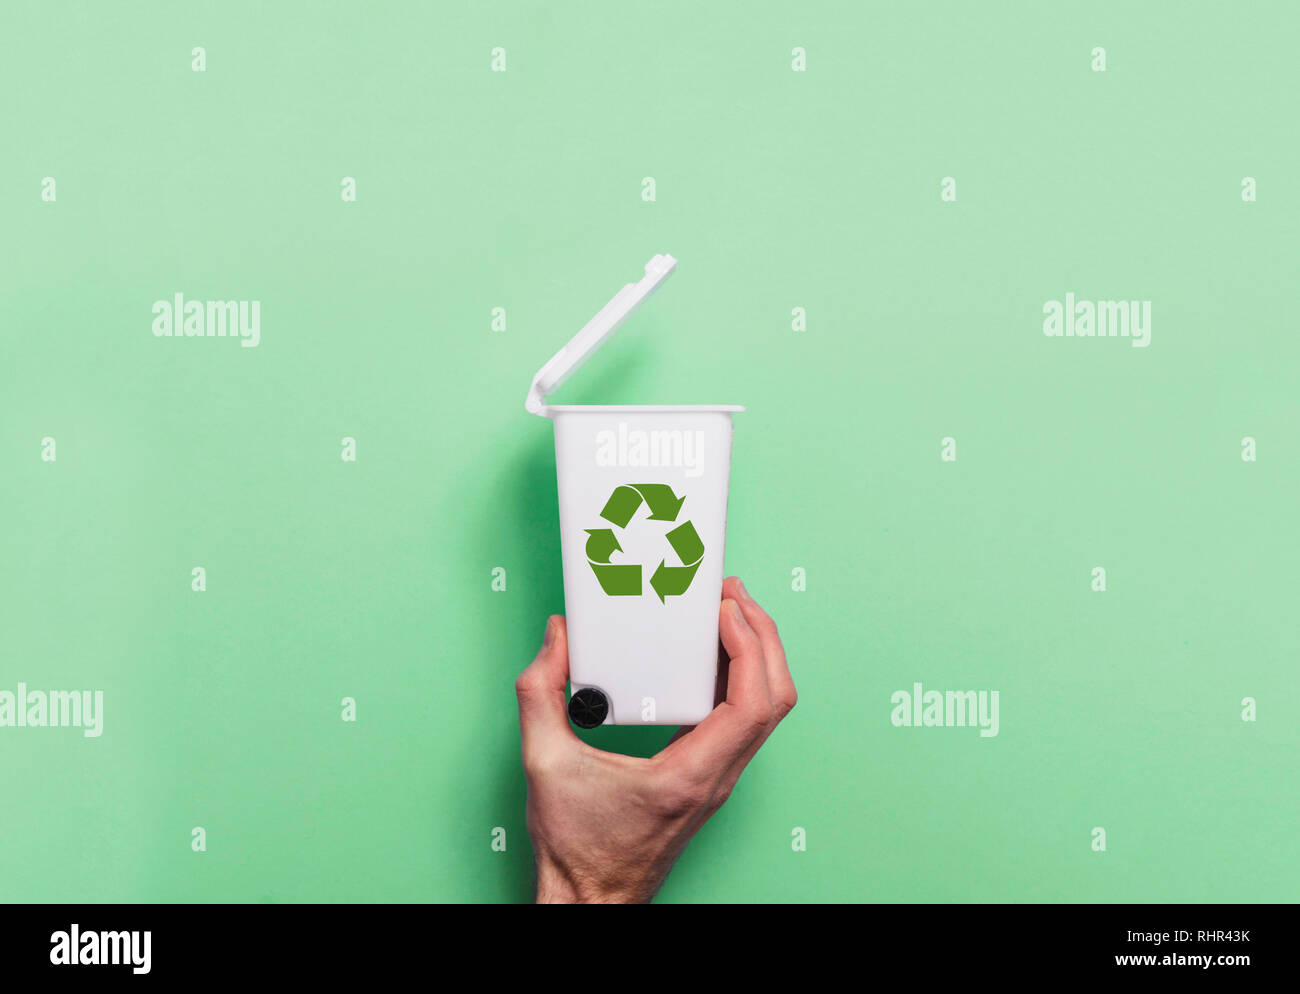 Hand holding recycling rubbish bin against a green background - Stock Image